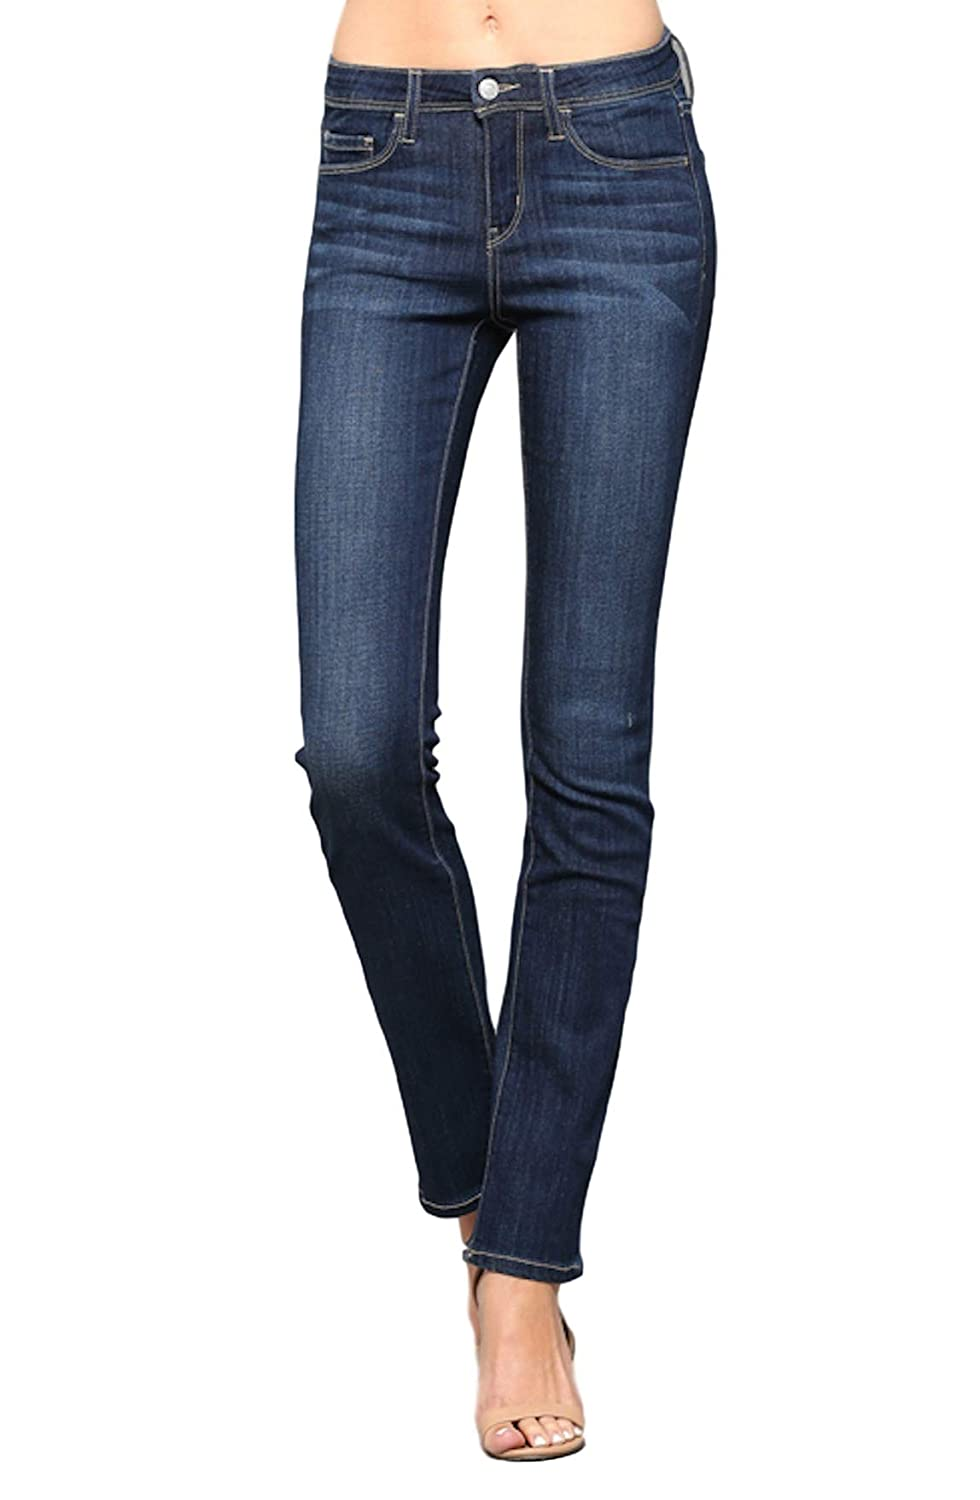 Ongekend Vervet by Flying Monkey Jeans Smog Boot Cut Jeans at Amazon HH-14